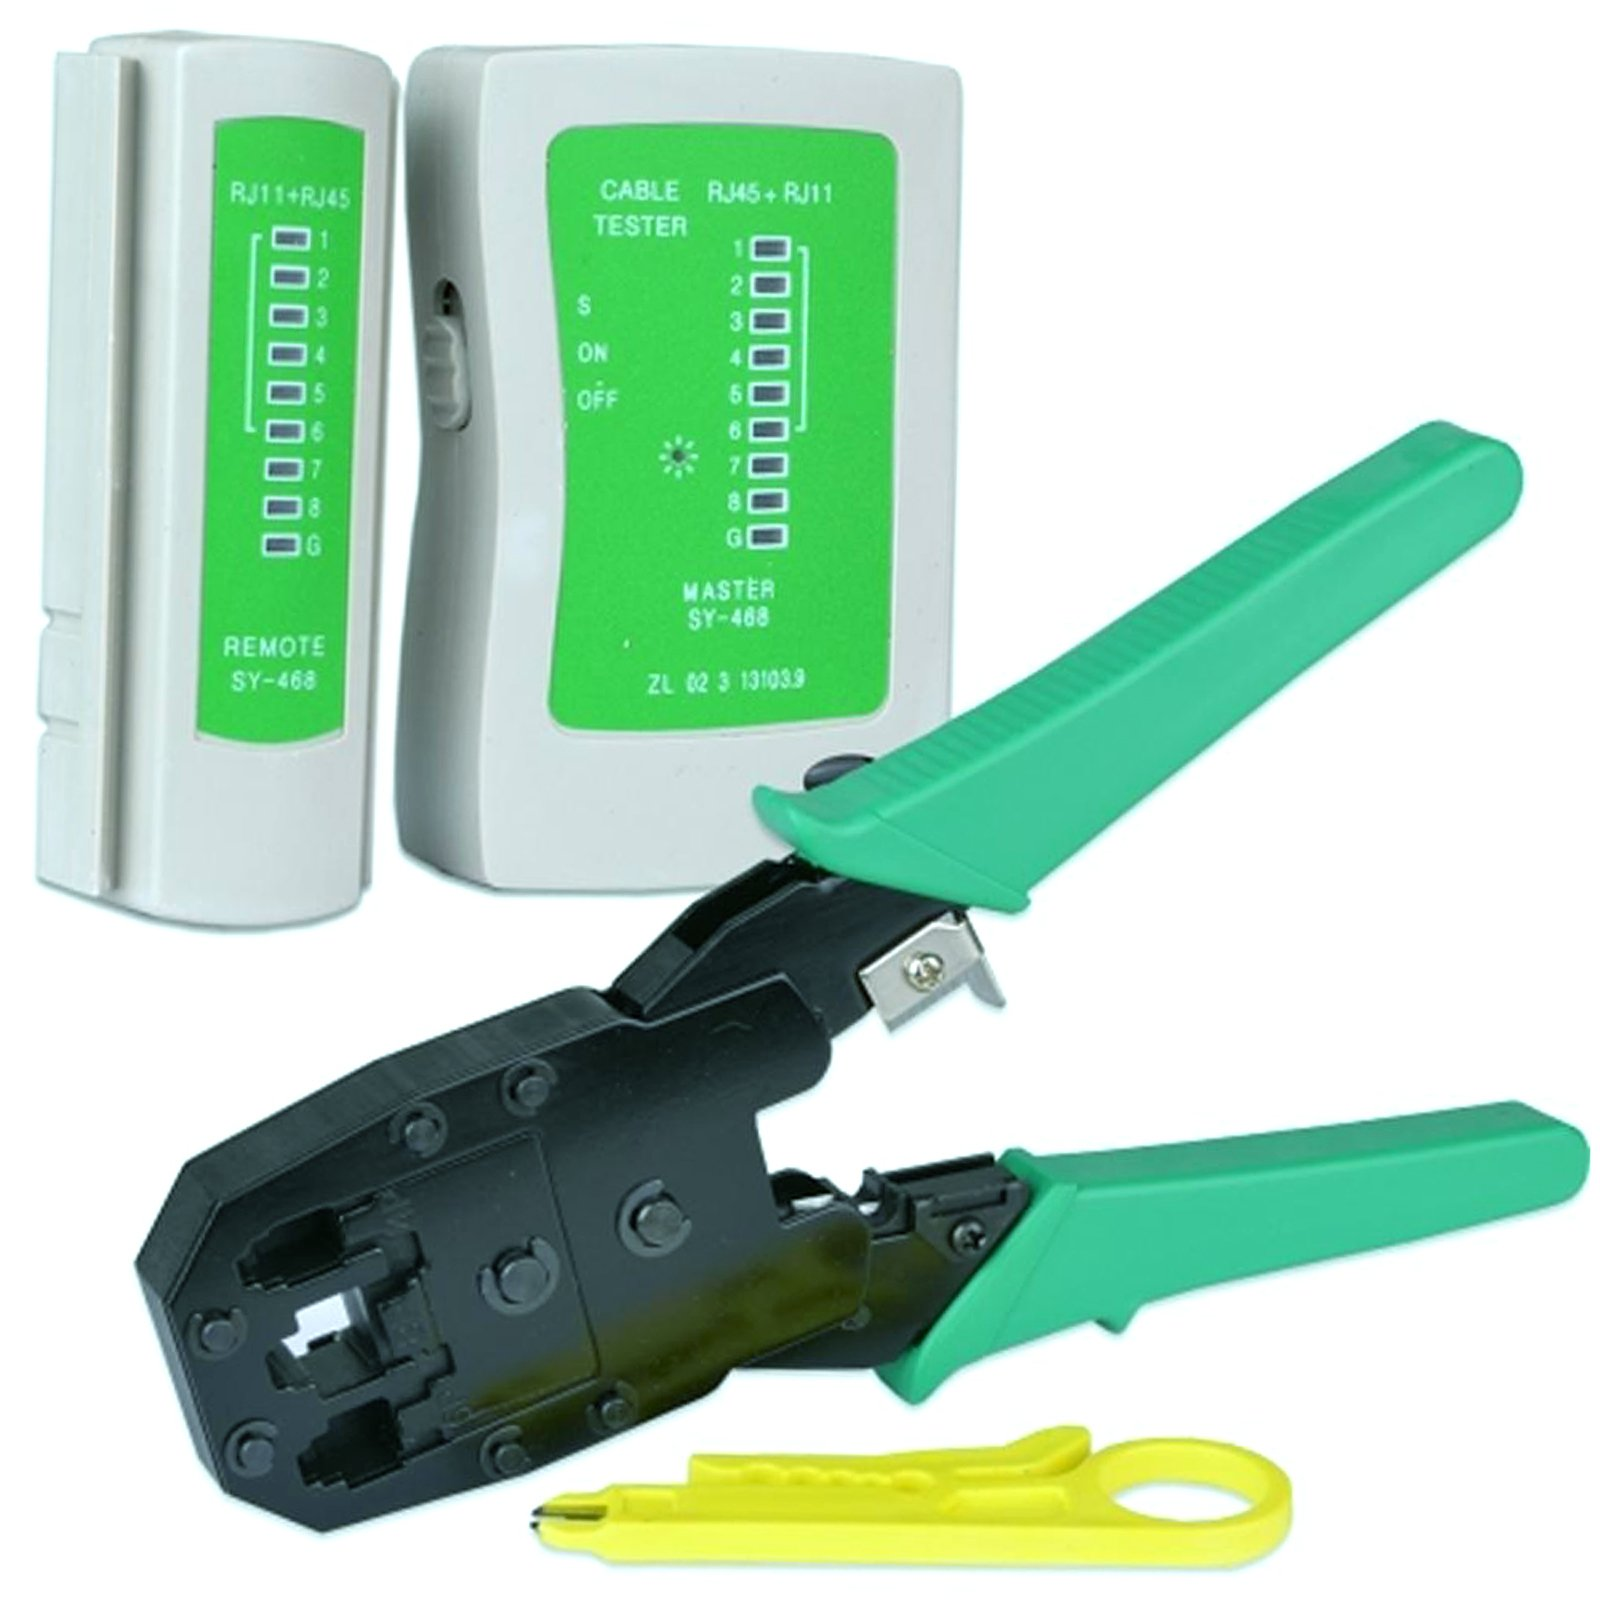 Network Cable Tester and Modular Crimping Tool for Electronics Repair